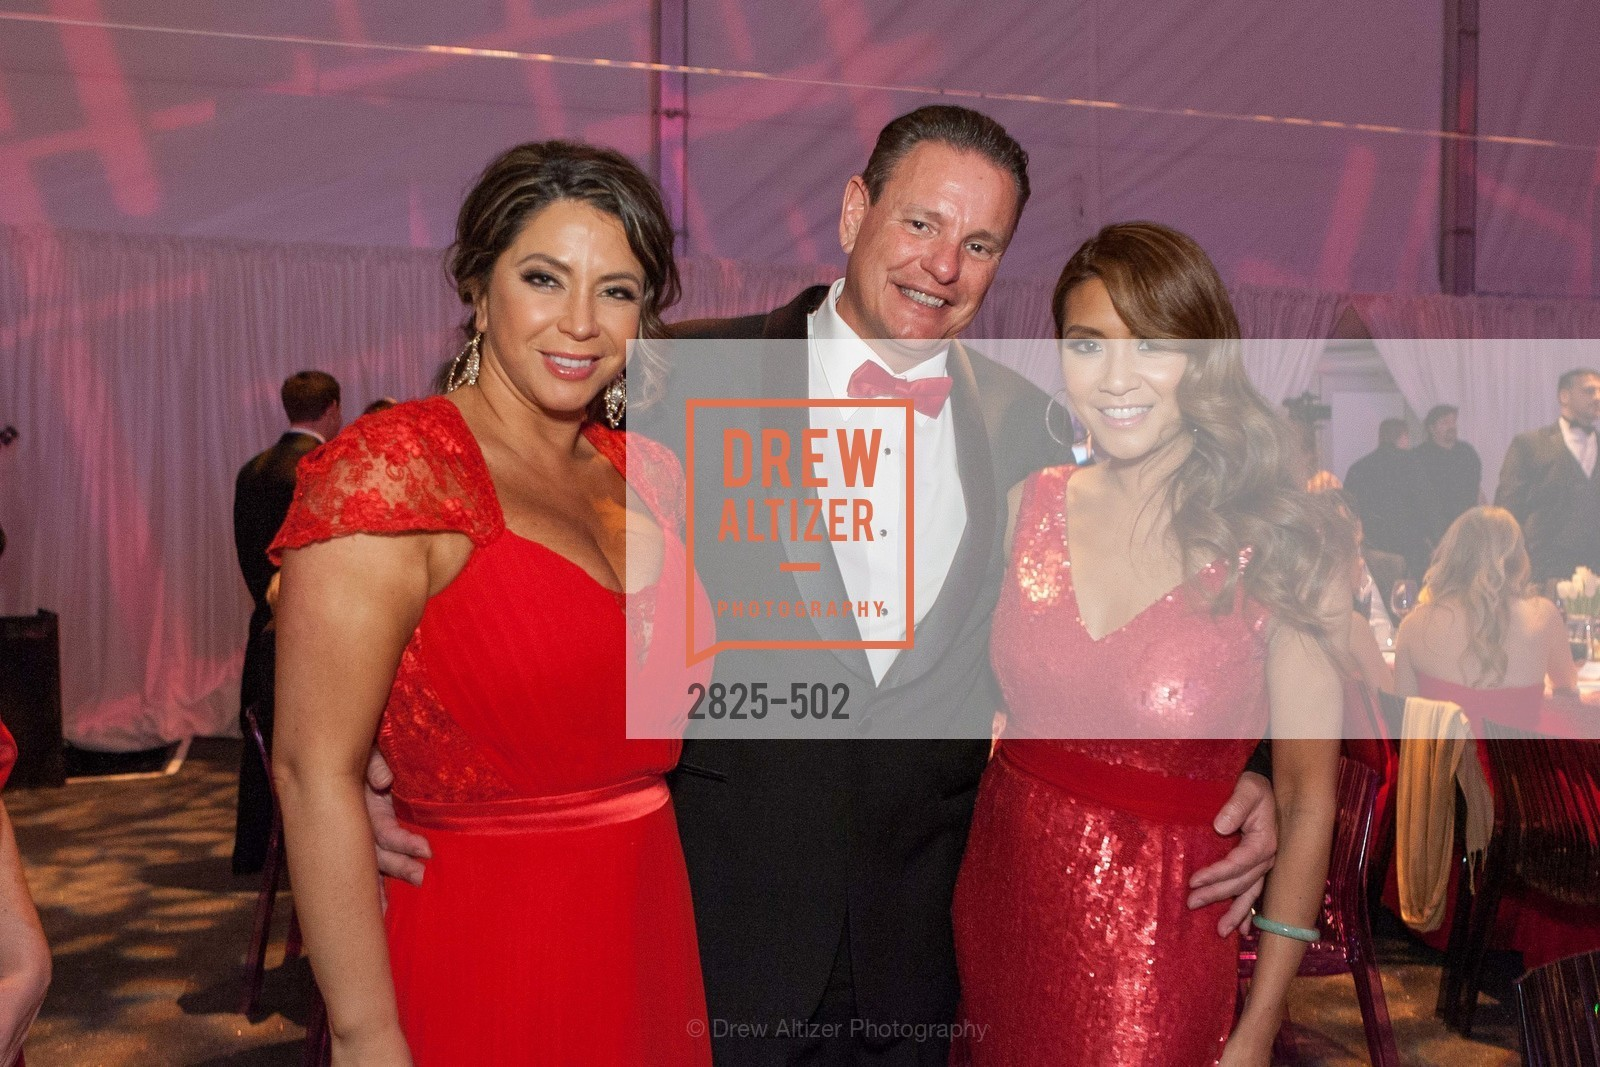 Maria Barrios, Richard Ehmer, Lillian Phan, 2014 RED CROSS Gala Honoring Paula Downey as the American Red Cross Bay Area Chapter Humanitarian CEO of the Year, US. Treasure Island (The Great Lawn), April 5th, 2014,Drew Altizer, Drew Altizer Photography, full-service agency, private events, San Francisco photographer, photographer california